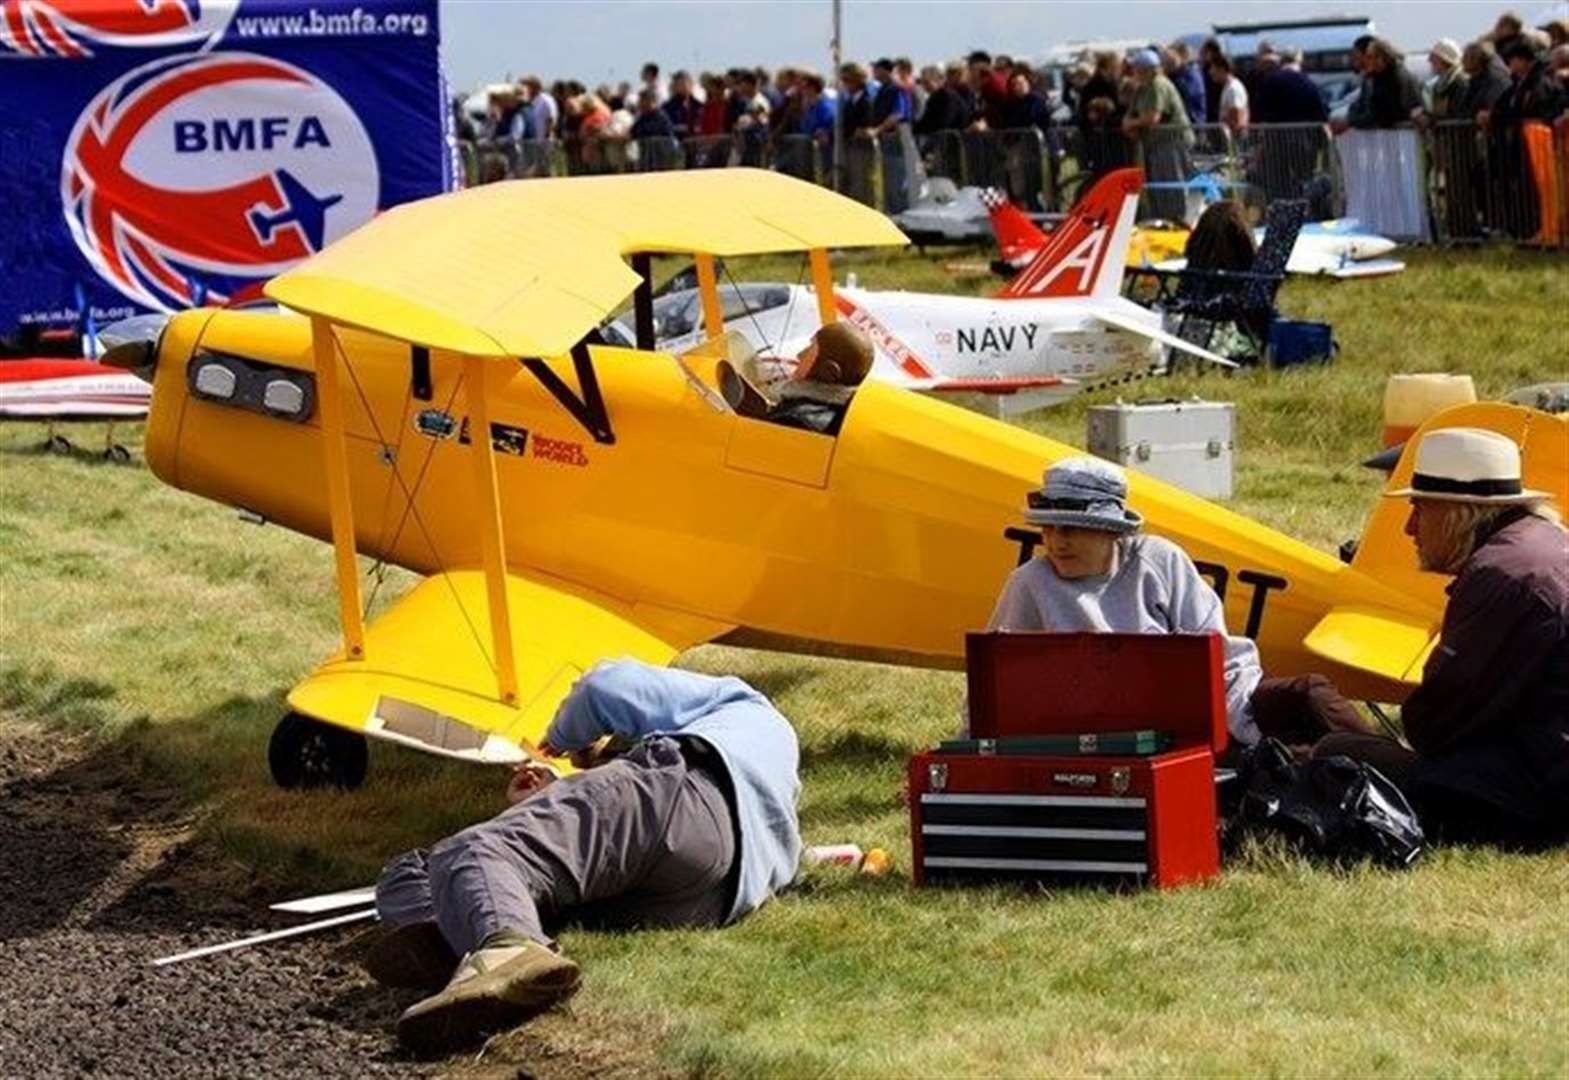 Model planes will take to the skies at RAF Barkston Heath this weekend